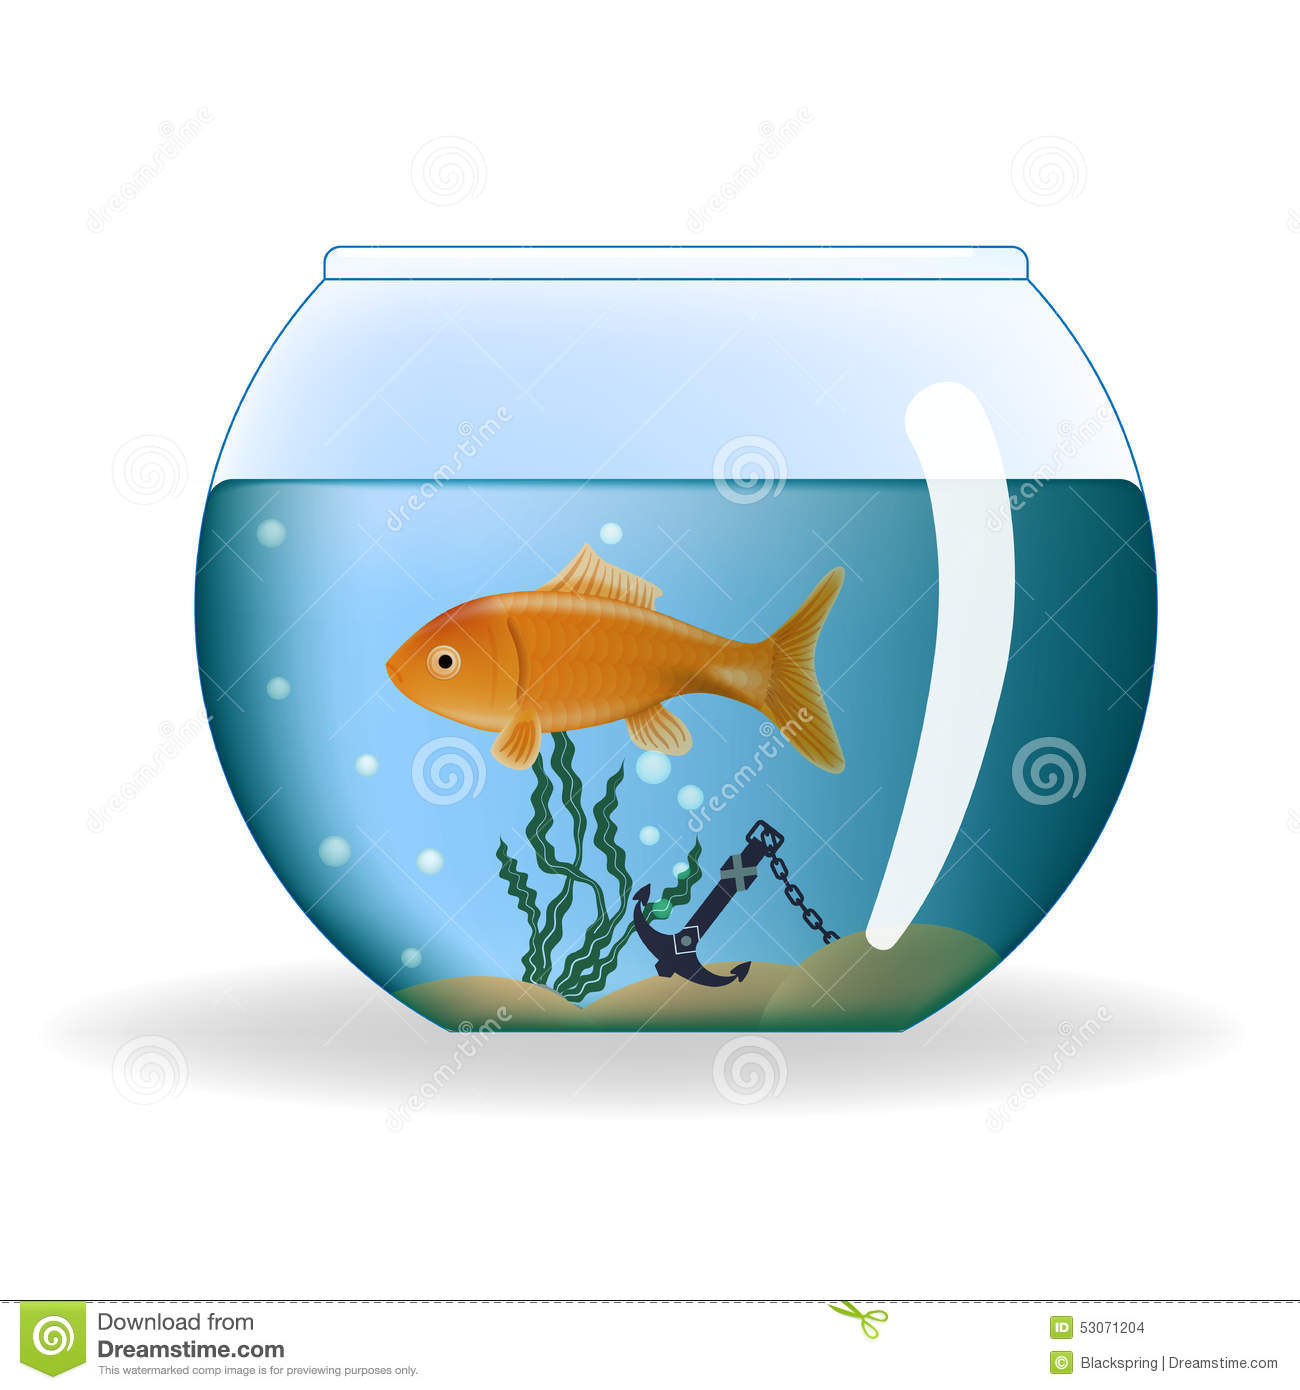 Poisson rouge dans l 39 aquarium rond illustration de vecteur for Aquarium pour poisson rouge